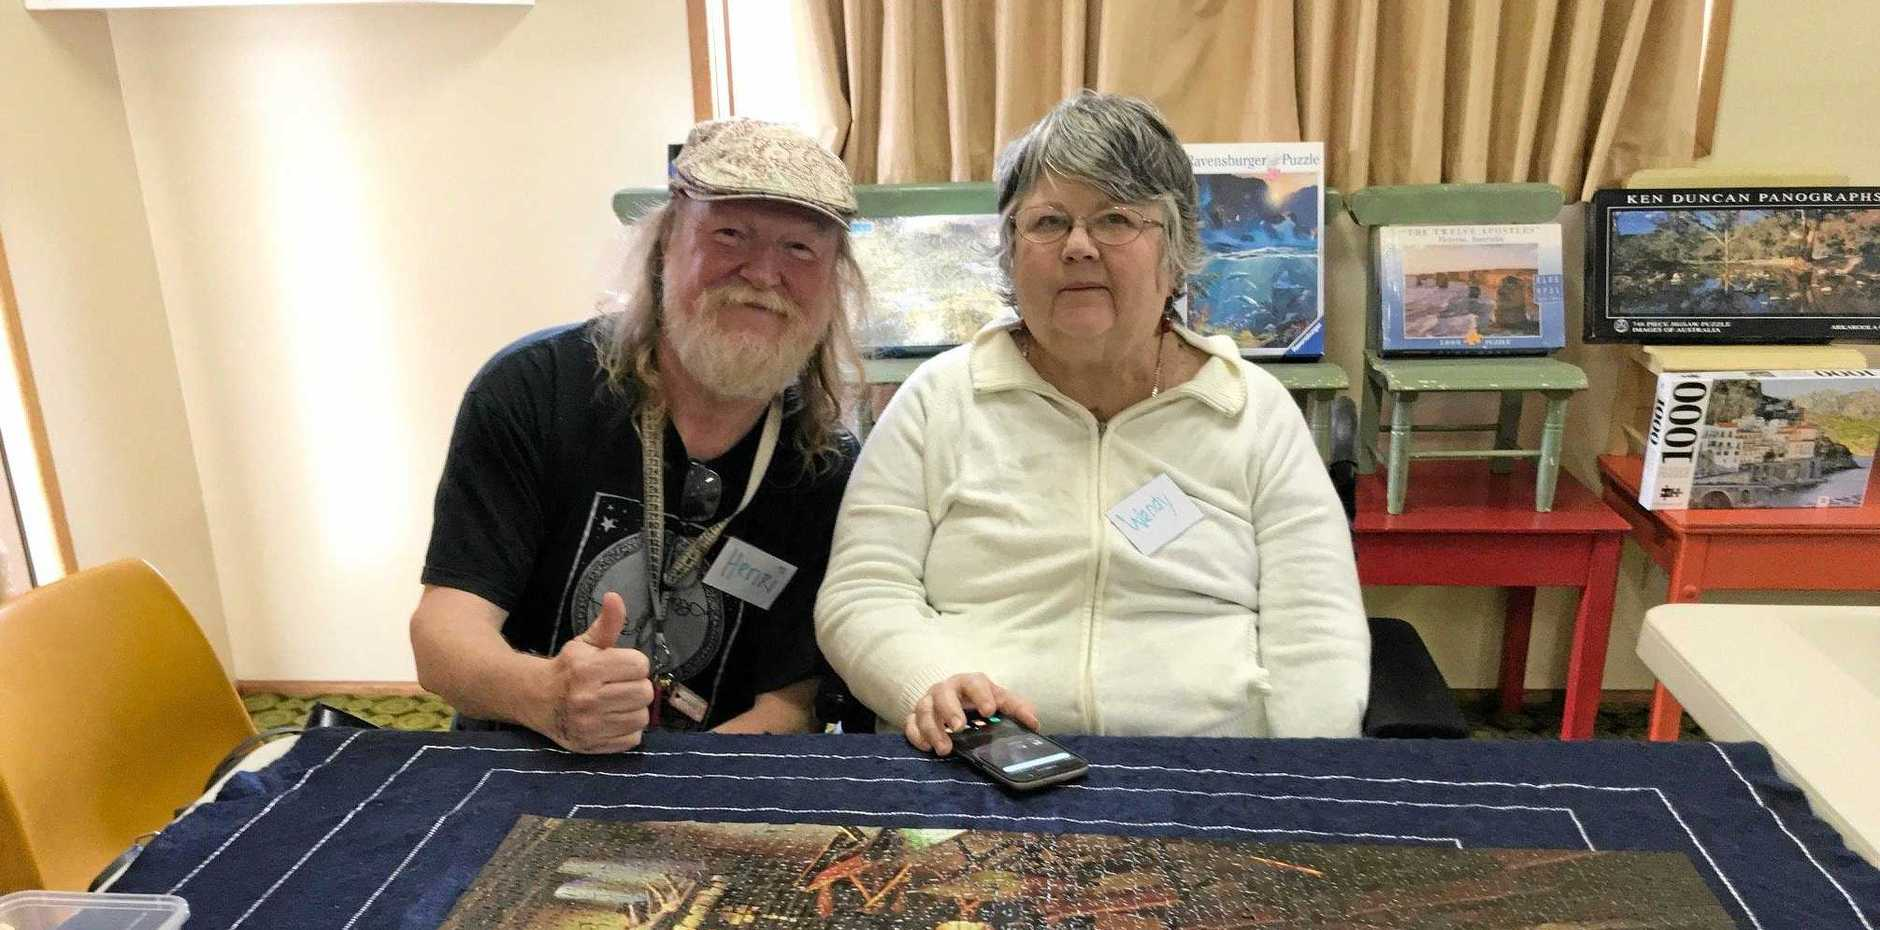 SOCIAL AND CHALLENGING: Henri and Wendy put their minds together to work on solving a puzzle.